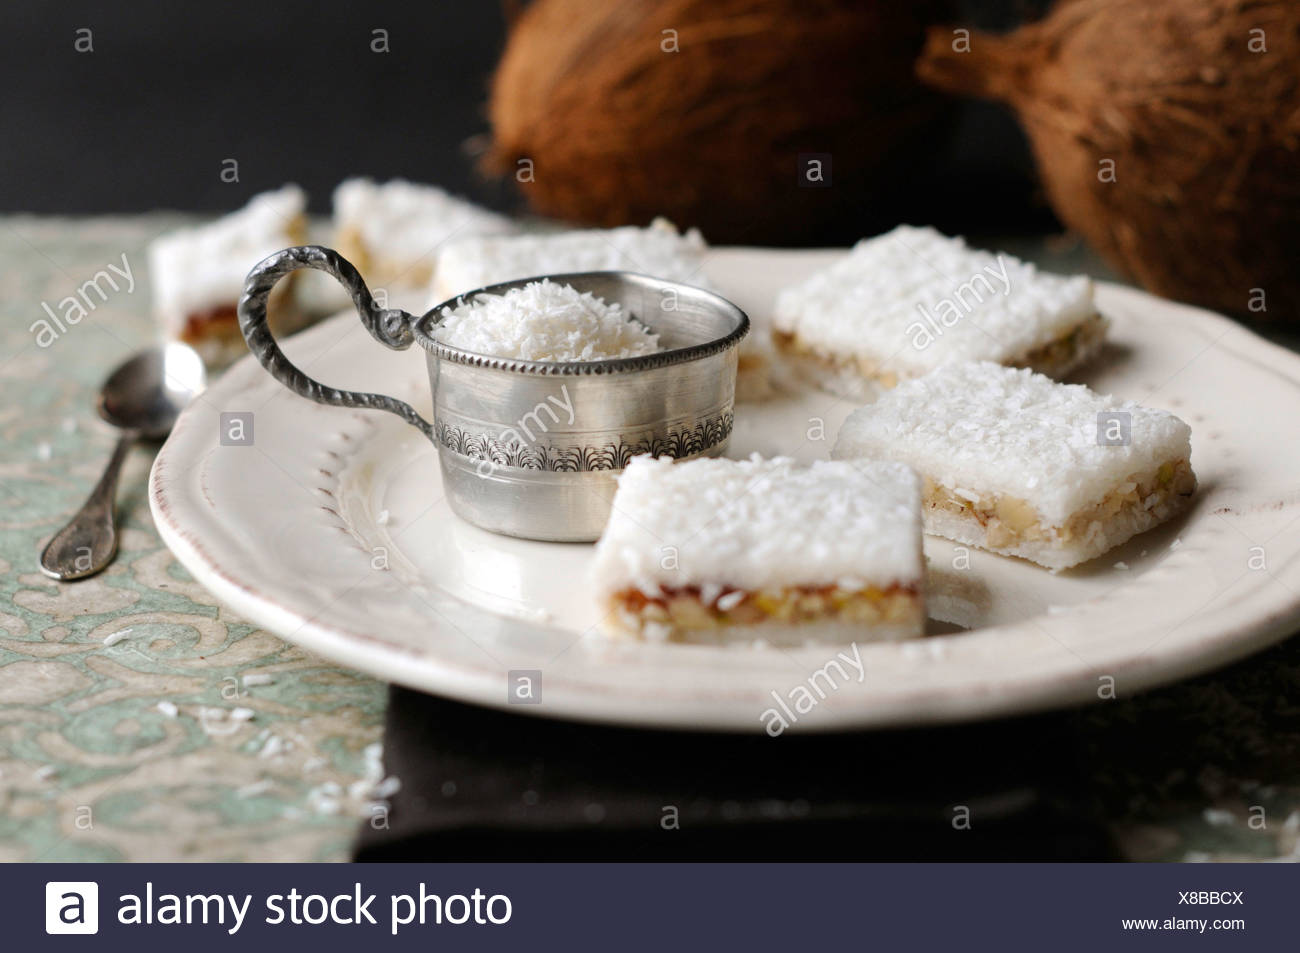 Coconut and cherry slices on a white plate - Stock Image